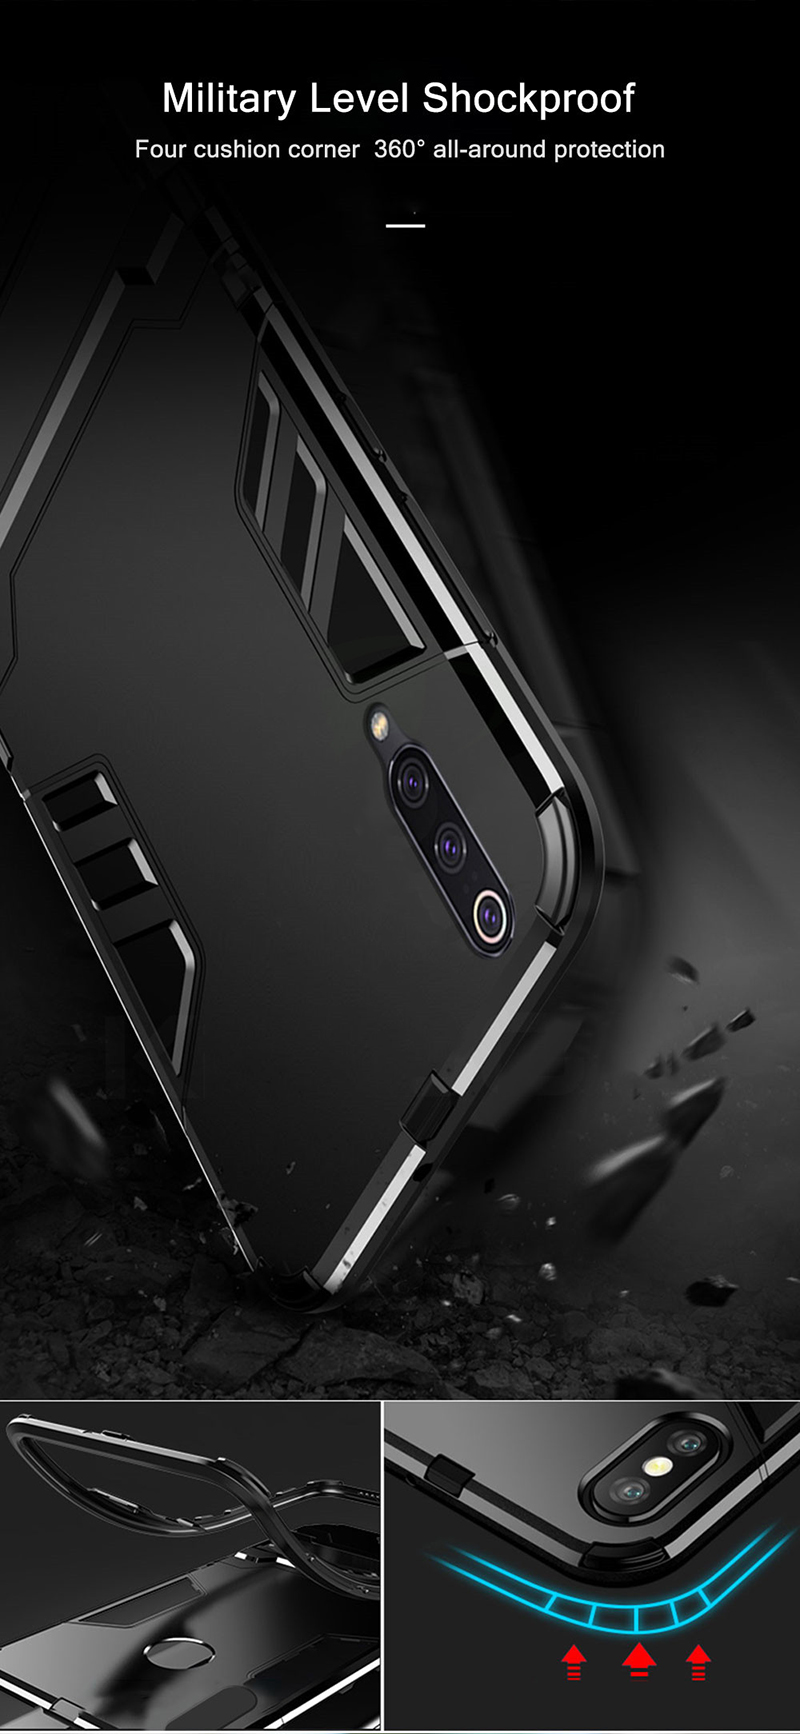 HTB13 B XfWG3KVjSZPcq6zkbXXaS Bat Kickstand Case For Samsung Galaxy S9 S10 Plus S10e Note 9 Samsung A70 A50 A30 M30 M20 Shockproof Armor TPU + PC Tough Cover